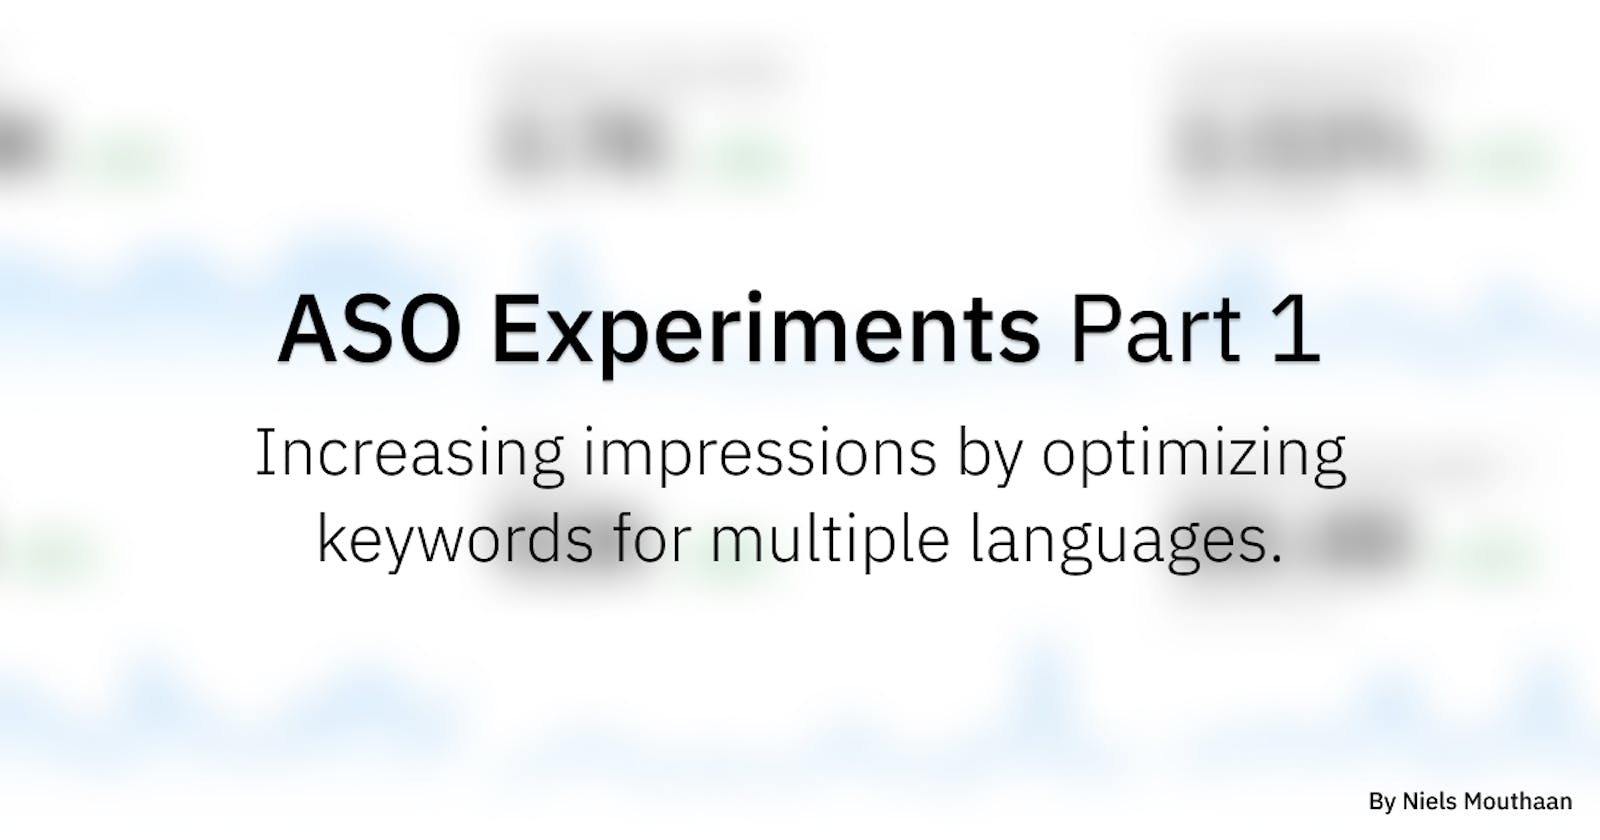 ASO Experiments Part 1: Increasing impressions by optimizing keywords for multiple languages